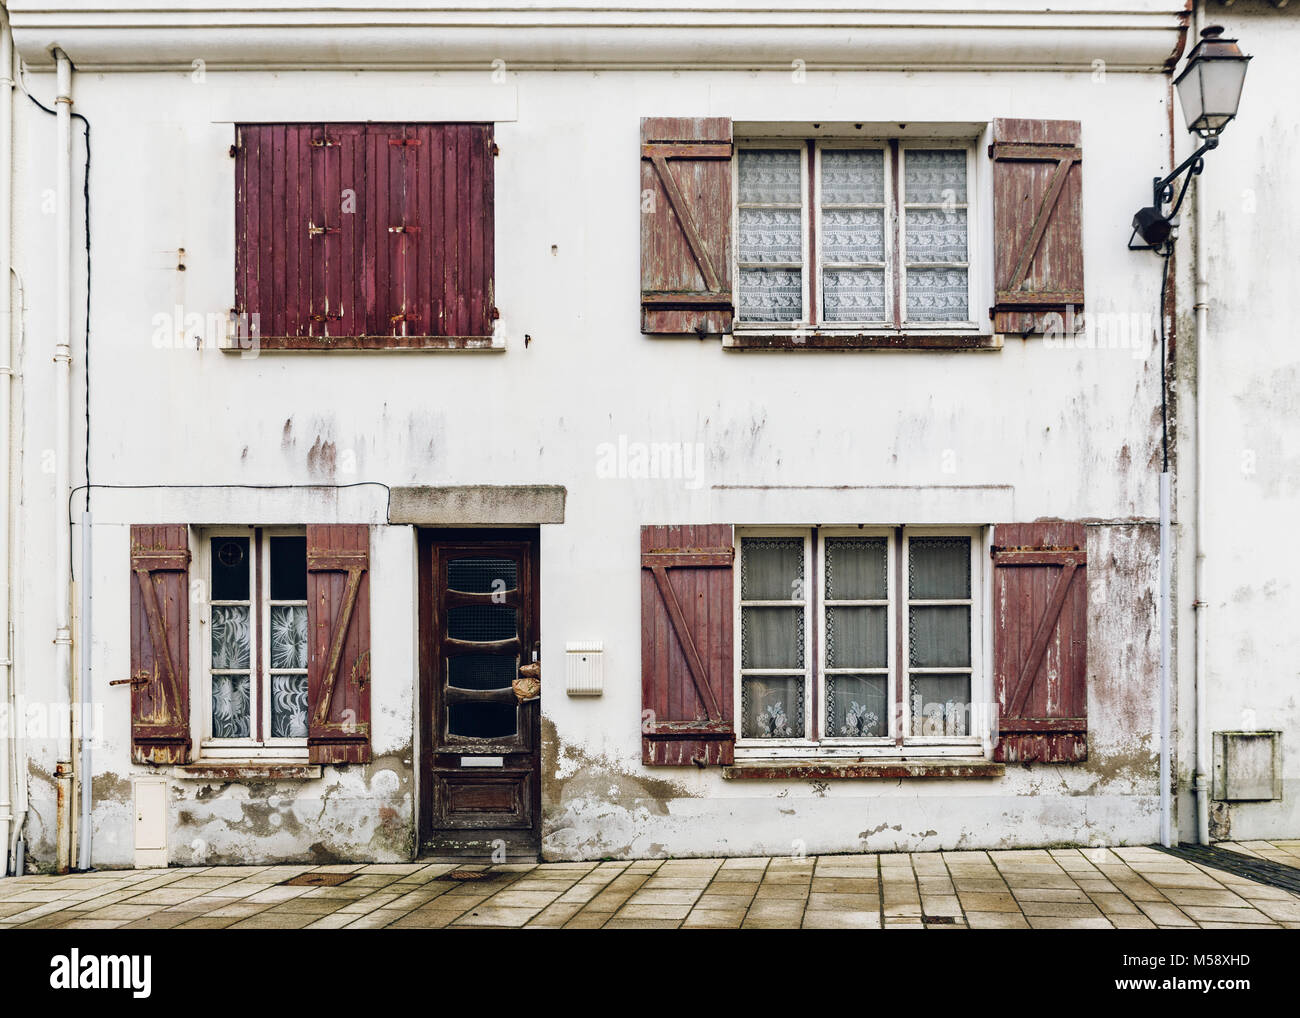 Dilapidated house facade in Brittany, France - Stock Image